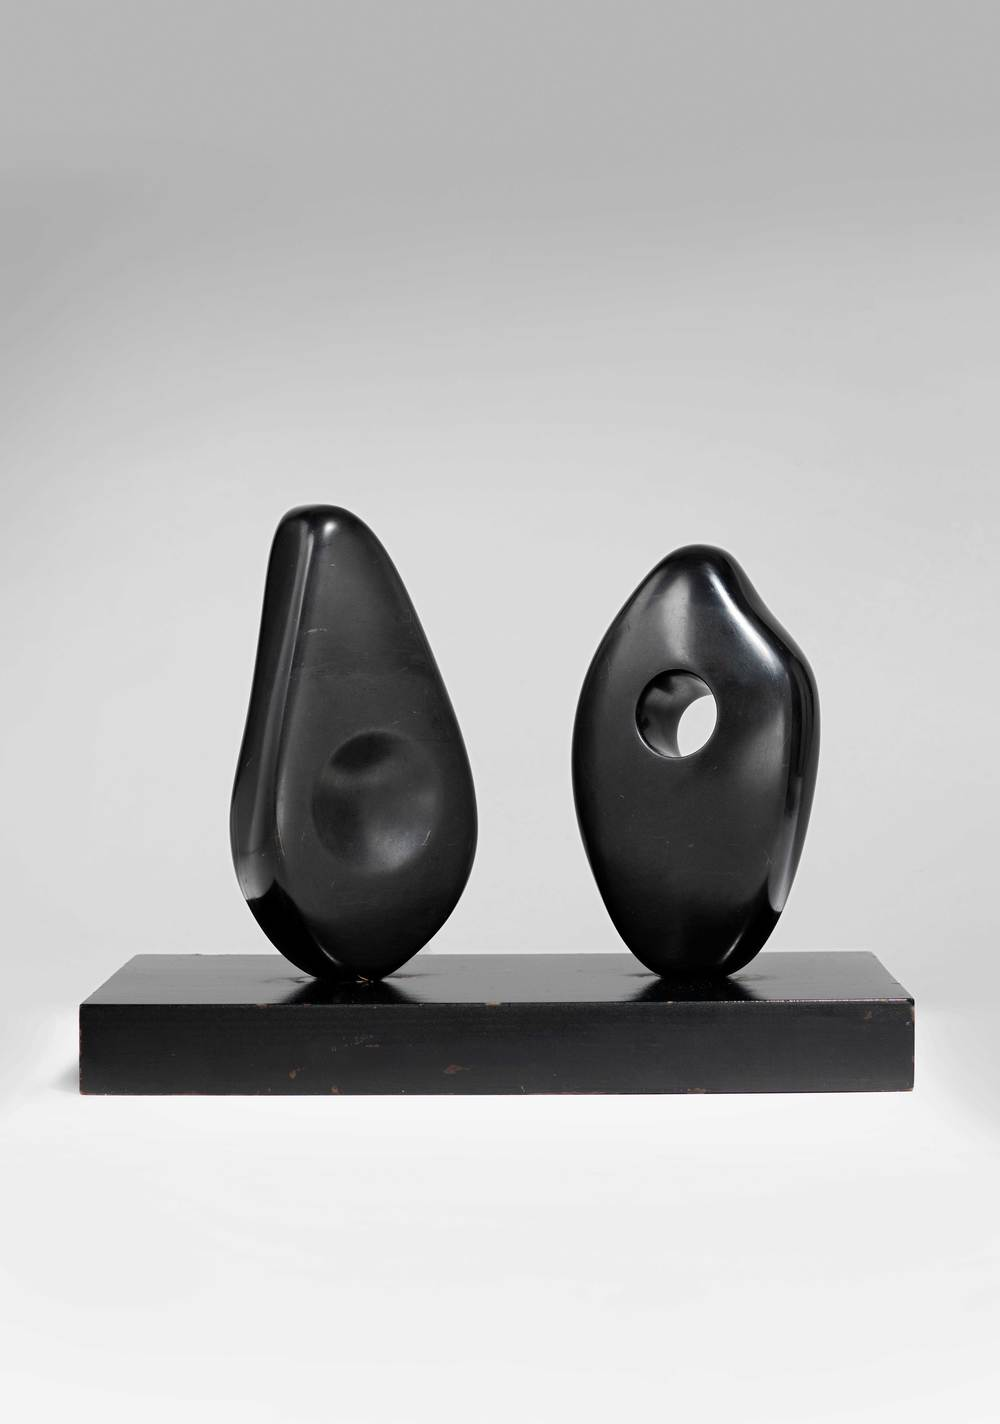 Barbara Hepworth Two Forms (Orkney), 1967 ©Bowness Photograph © Christie's Images Limited 2015